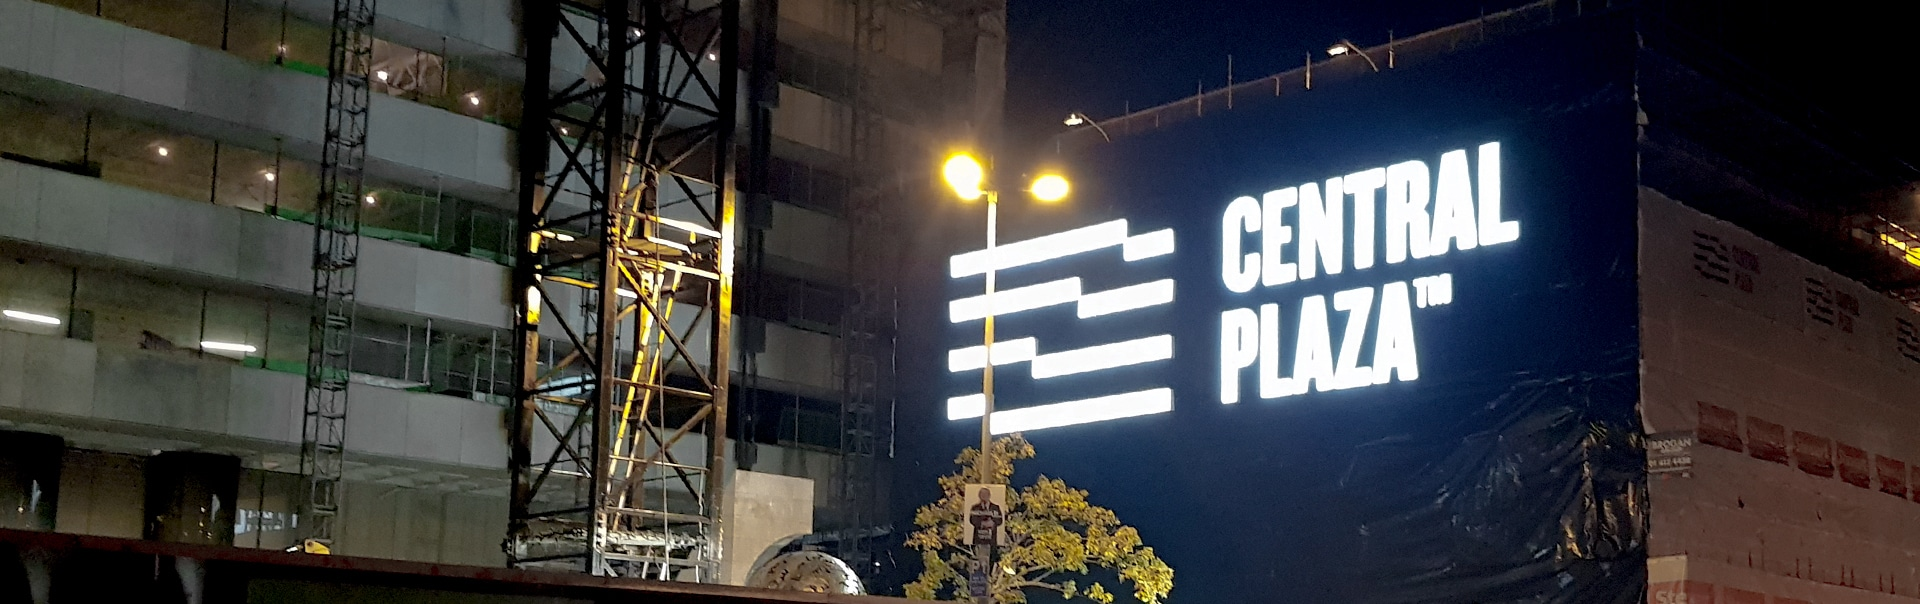 A huge facelit sign brands a new city centre destination